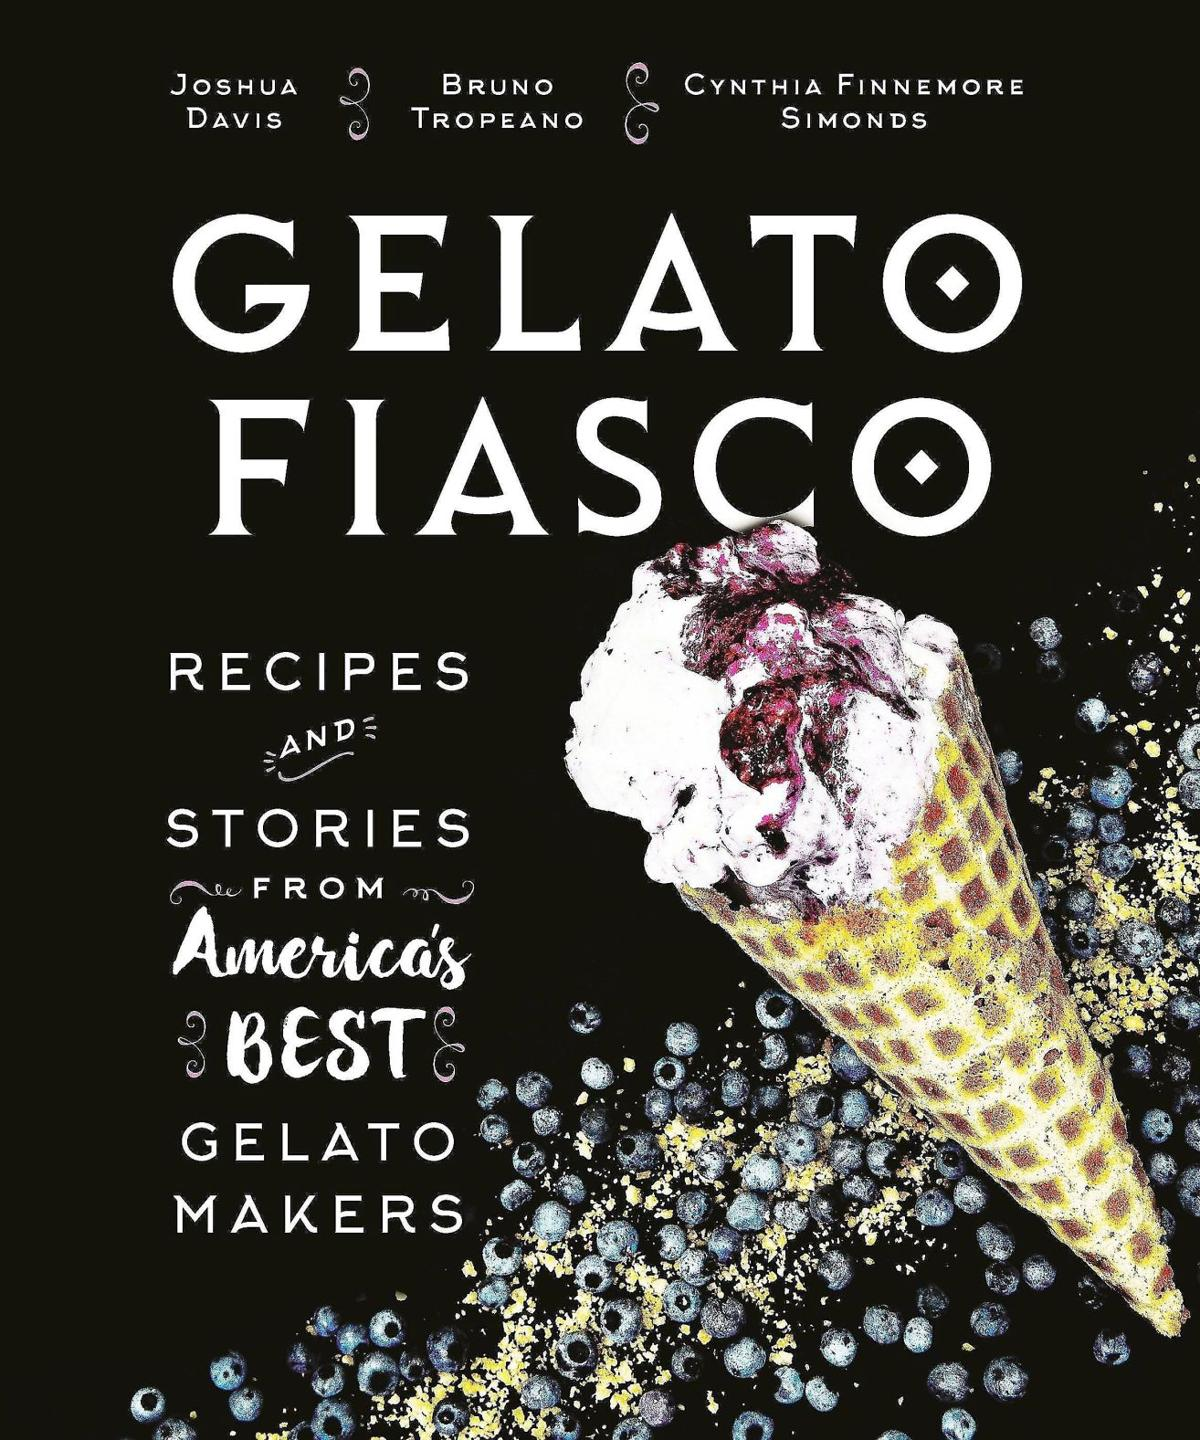 Stephen Fries: Creative flavors bring gelato to new levels